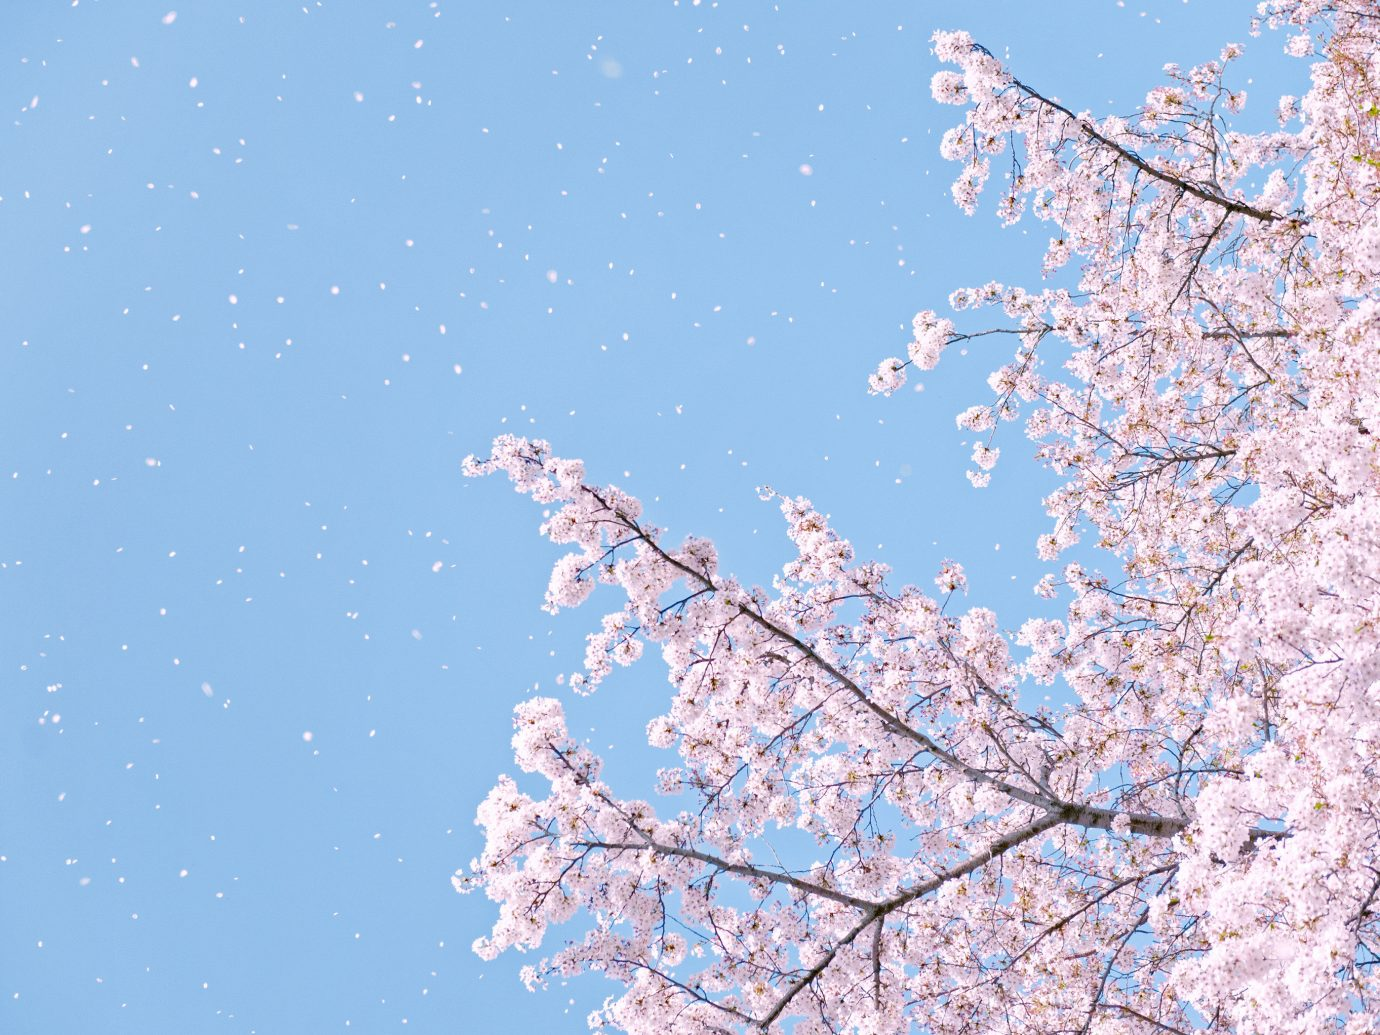 Offbeat tree sky outdoor flower branch plant blossom cherry blossom season spring